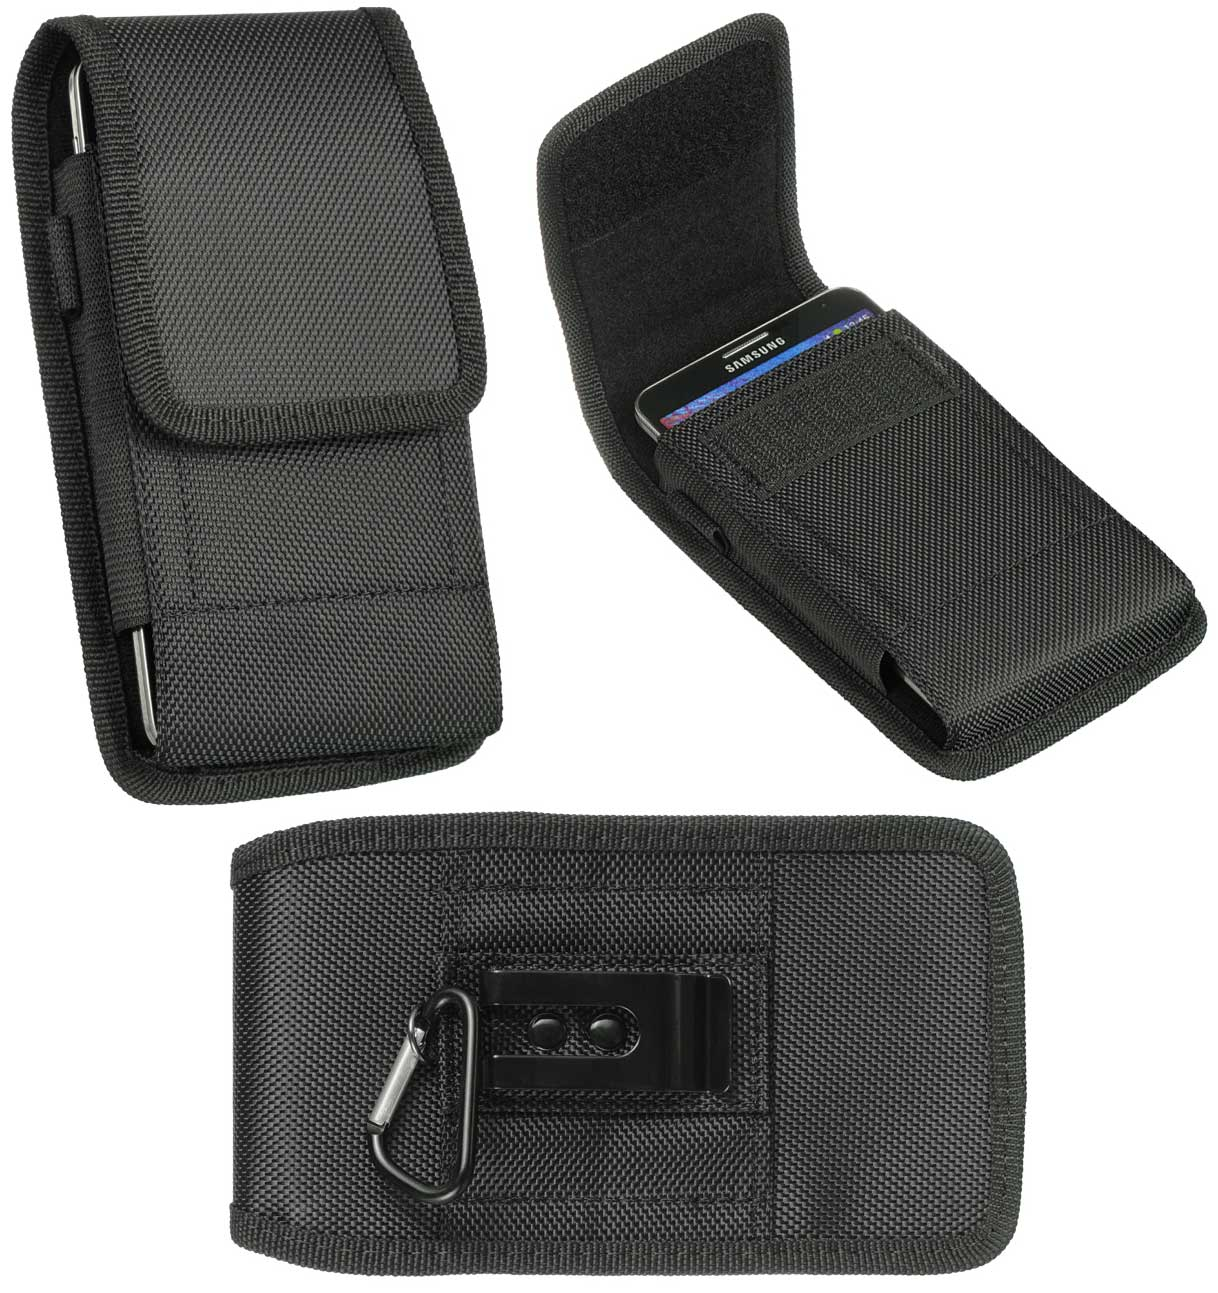 Nokia Lumia 635 Neoprene Nylon Case Pouch Clip Hook Black